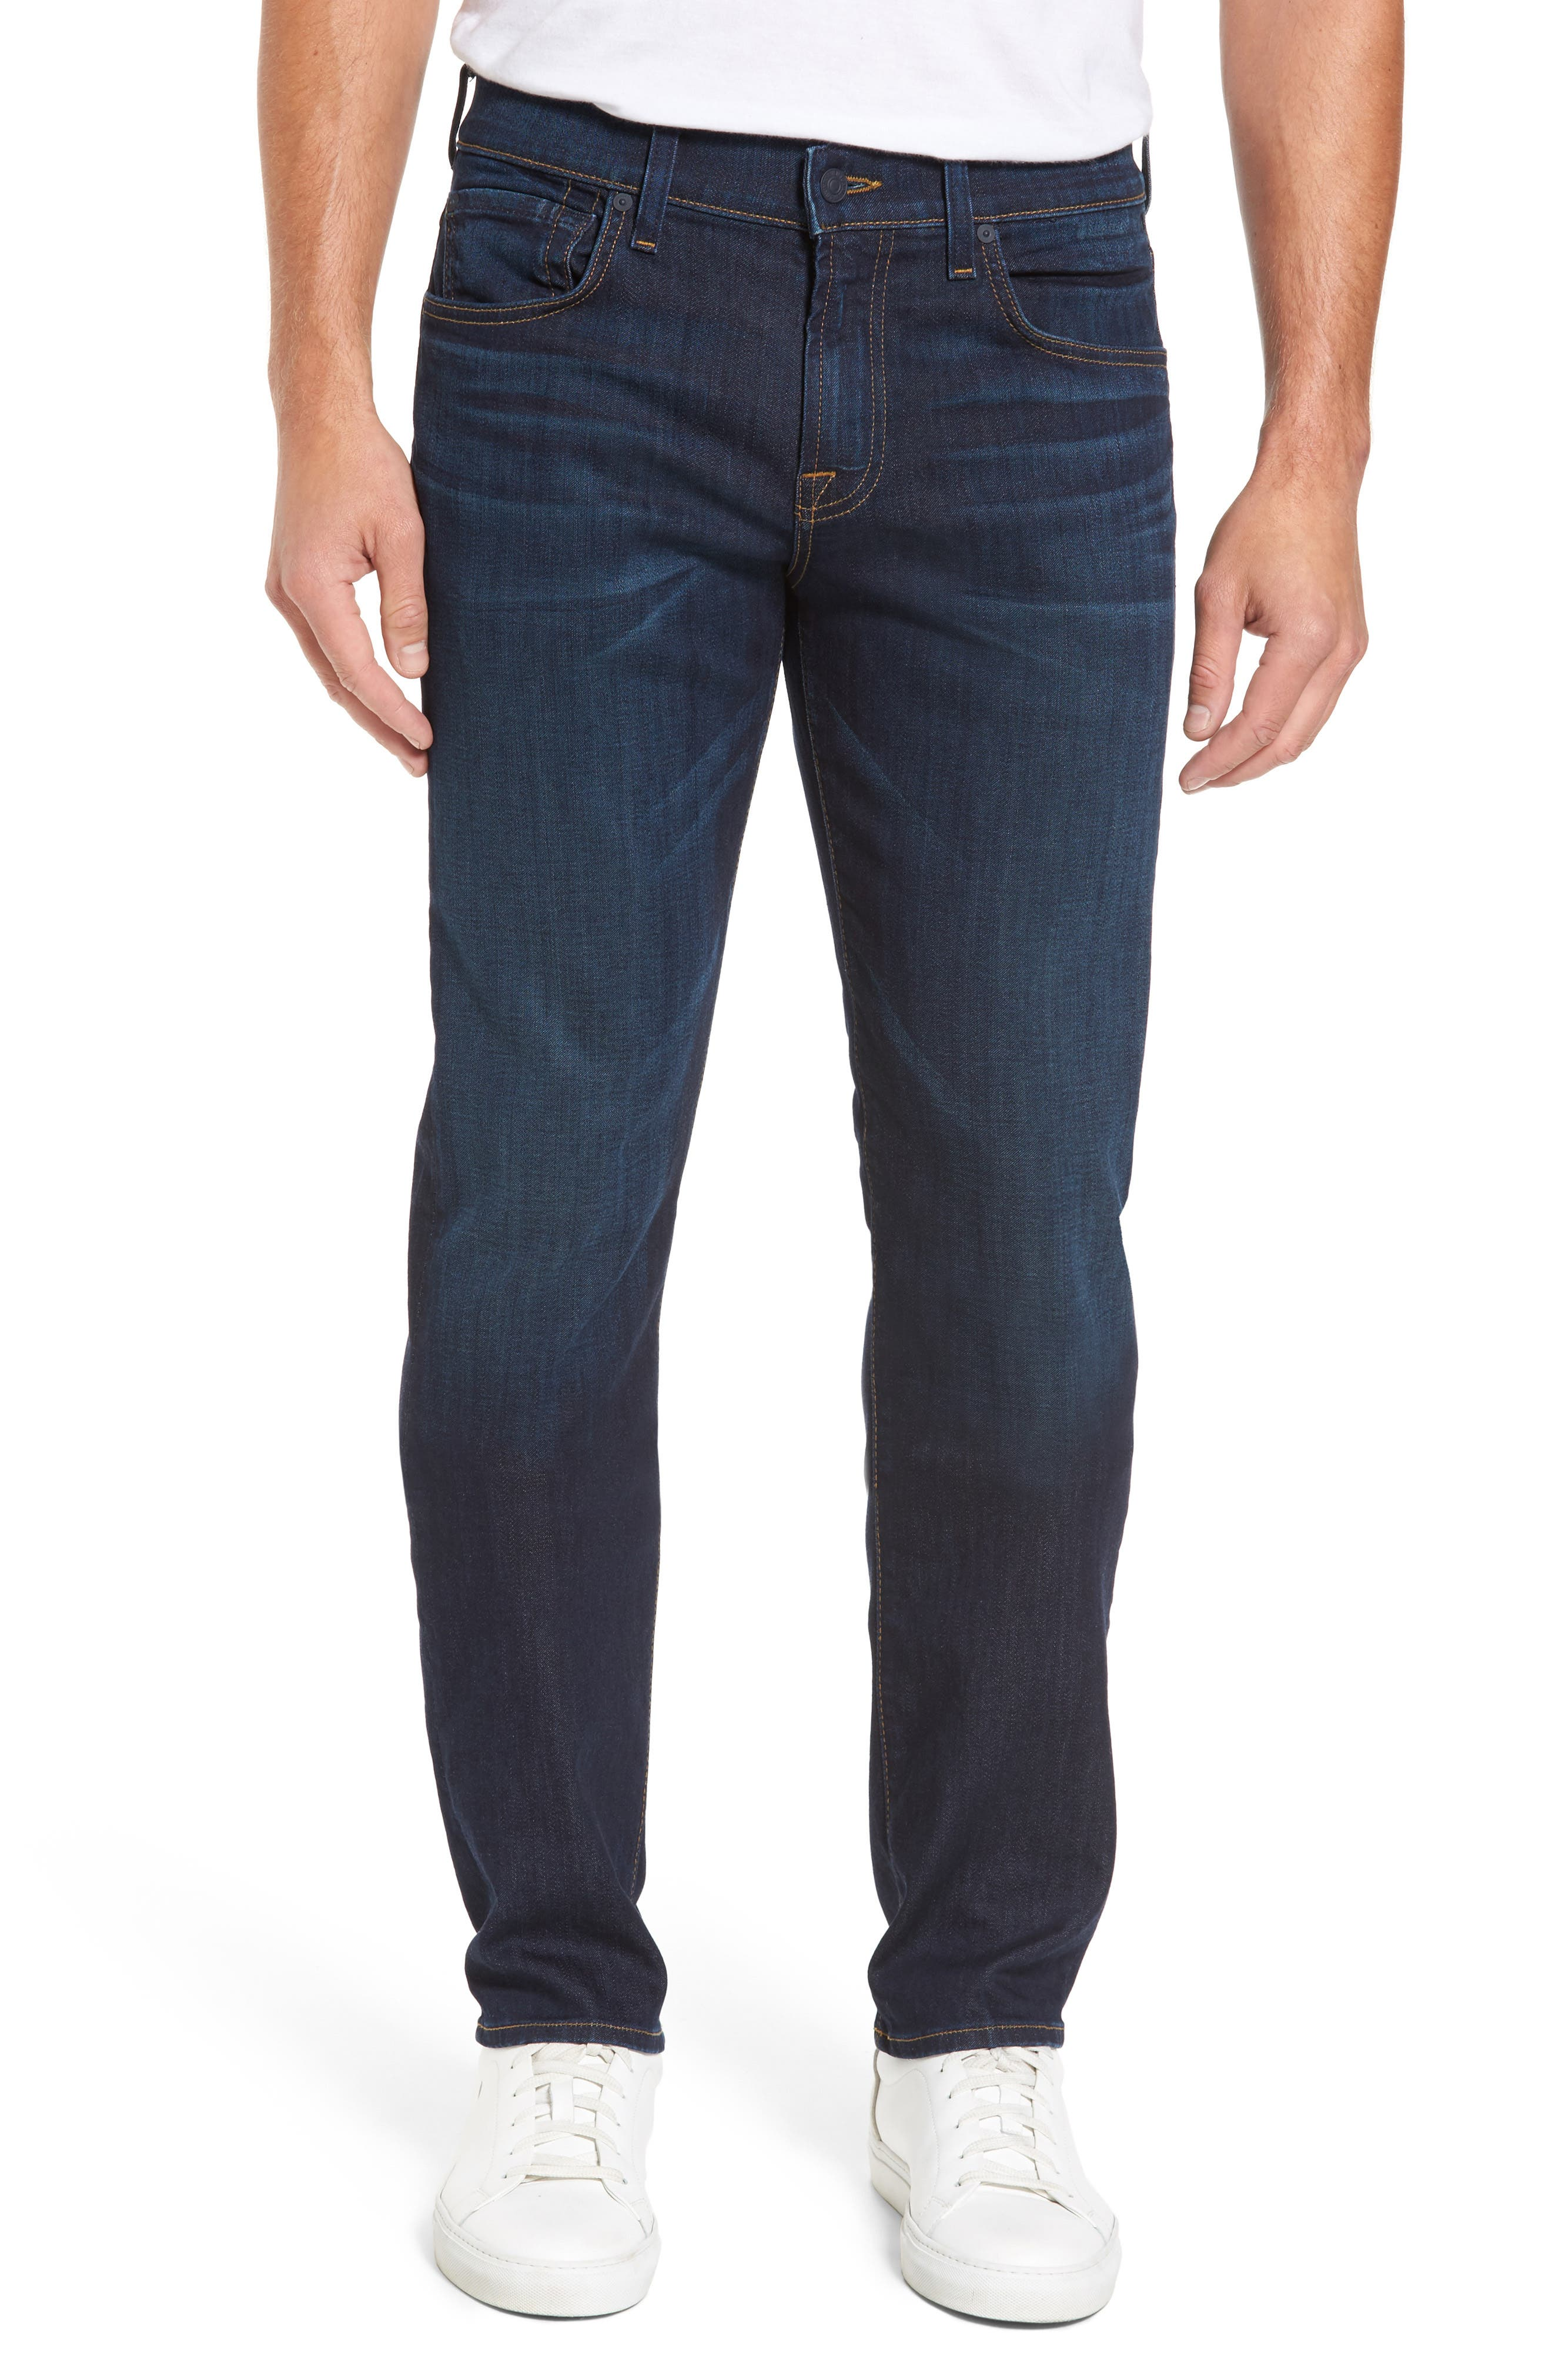 Luxe Performance Straight Leg Jeans,                         Main,                         color, NORTH PACIFIC